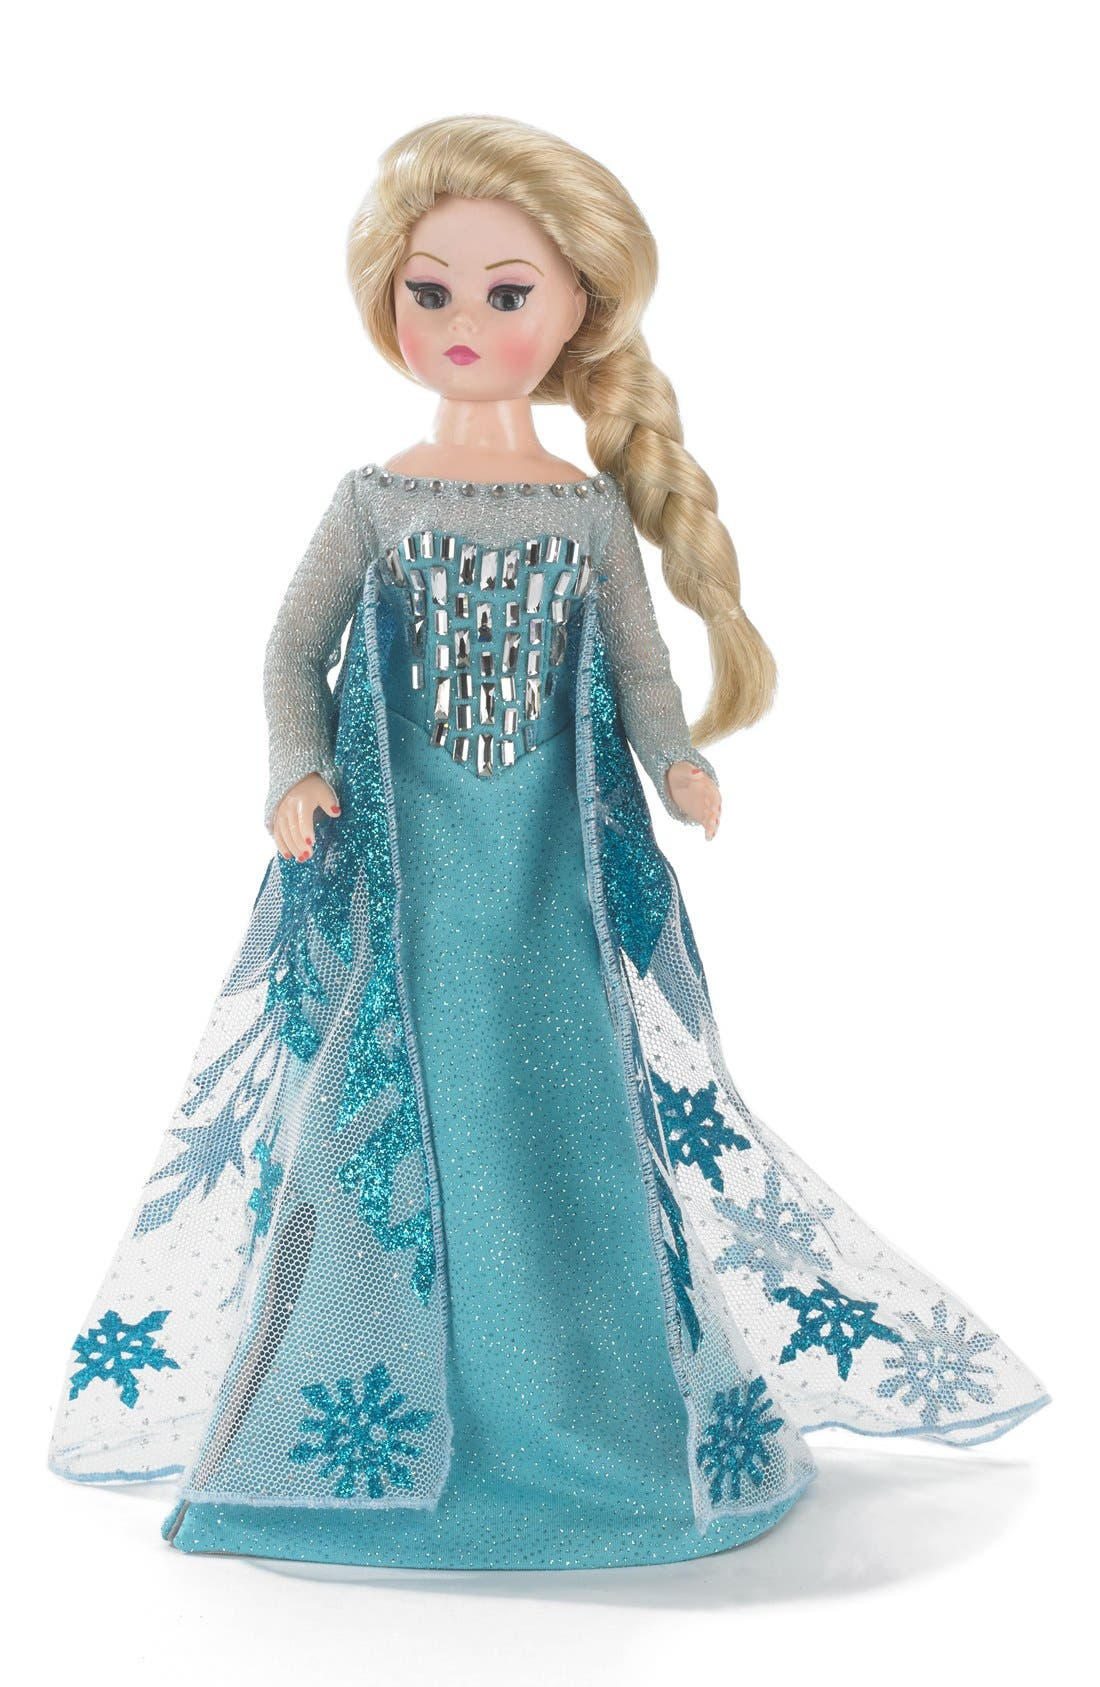 Disney<sup>®</sup> Frozen Elsa 10 Inch Collectible Doll,                             Main thumbnail 1, color,                             000